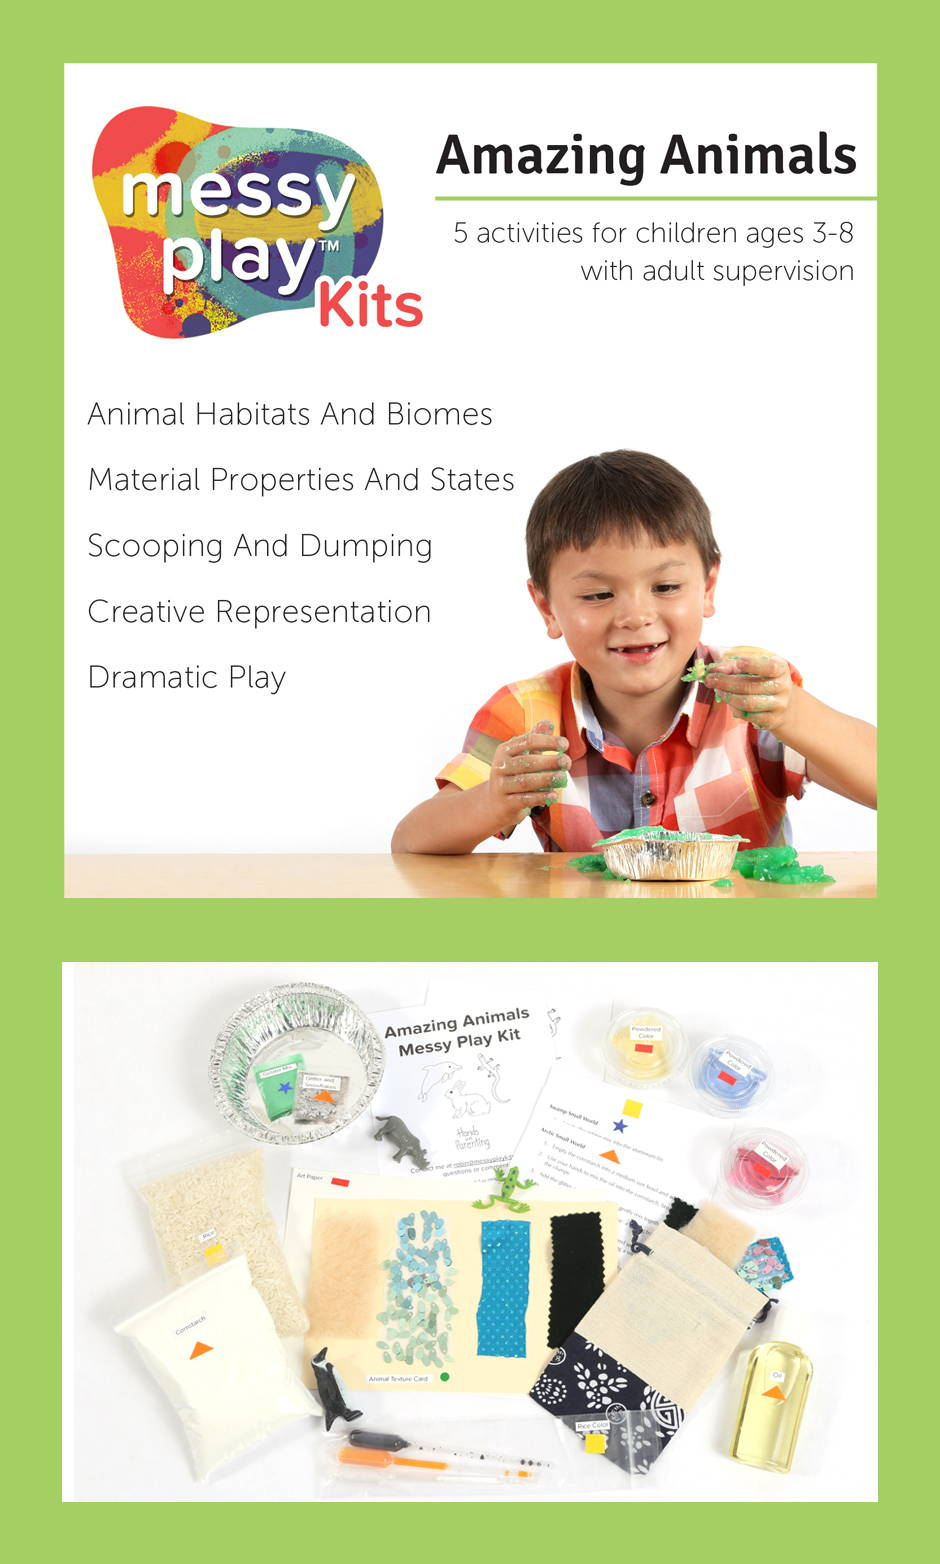 Amazing Animals Messy Play Kit contains 5 activities that teach animal habitats and biomes, material properties and states, scooping and dumping, creative representation, and dramatic play